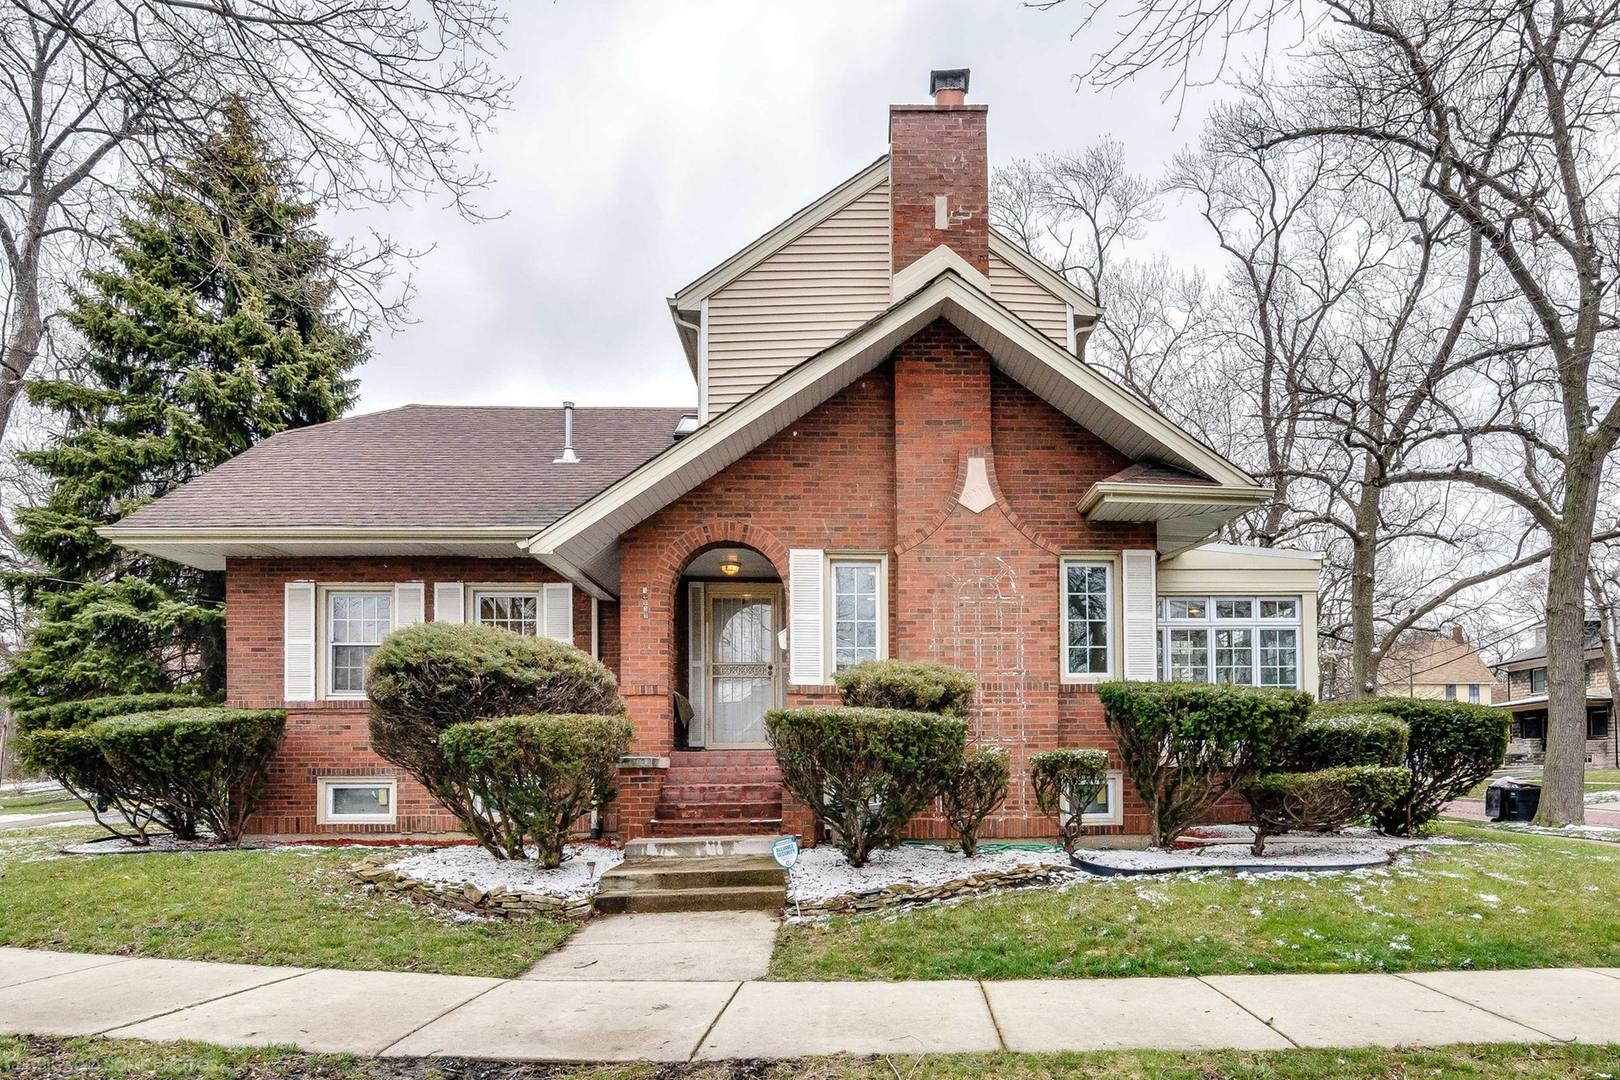 Welcome to your dream home in one of the most sought after areas in Chicago. This charming brick home is walking distance to the Metra and is located on a beautiful corner lot that is surrounded by green space and has a massive backyard w/a huge deck.  The home features a truly open floor plan on the first floor. The gorgeous kitchen has a large breakfast bar, granite counters, and SS appliances with wall-mounted double oven. The kitchen opens to the formal dining room and formal living room. The living room features a fireplace with an adjacent sun room that has floor to ceiling windows, but can be enjoyed all year. The main level also includes a powder room, hardwood floors throughout, and an en suite master bedroom. The original hardwood floors continue to the second level where you will find the ideal family layout of 3 bedrooms and a full bath. Add the family rooms, a 5th bedroom, abundant storage, and another full bath in the basement and you have it all!